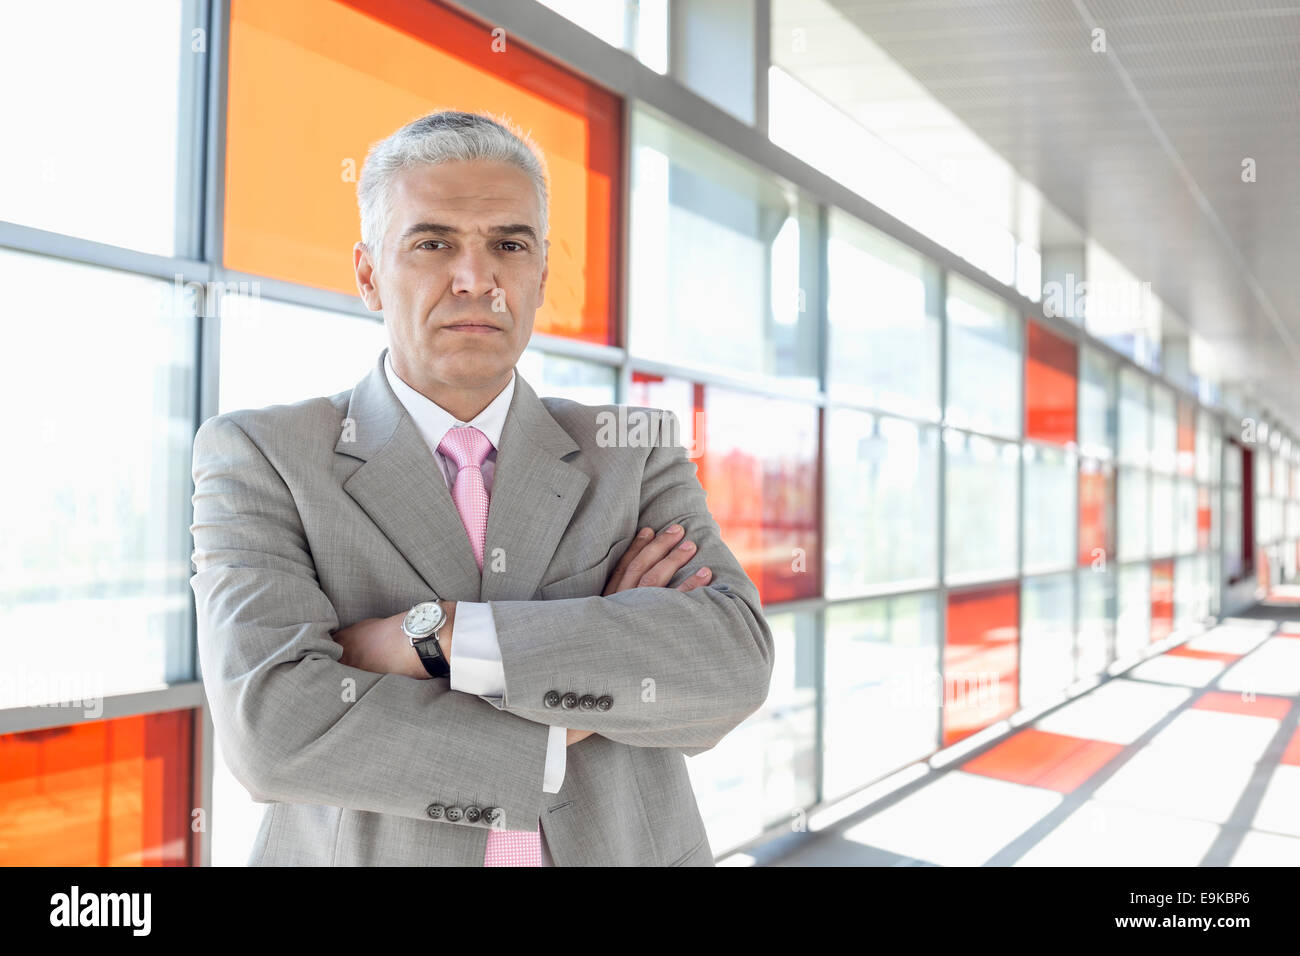 Portrait of confident middle aged businessman at railroad station - Stock Image